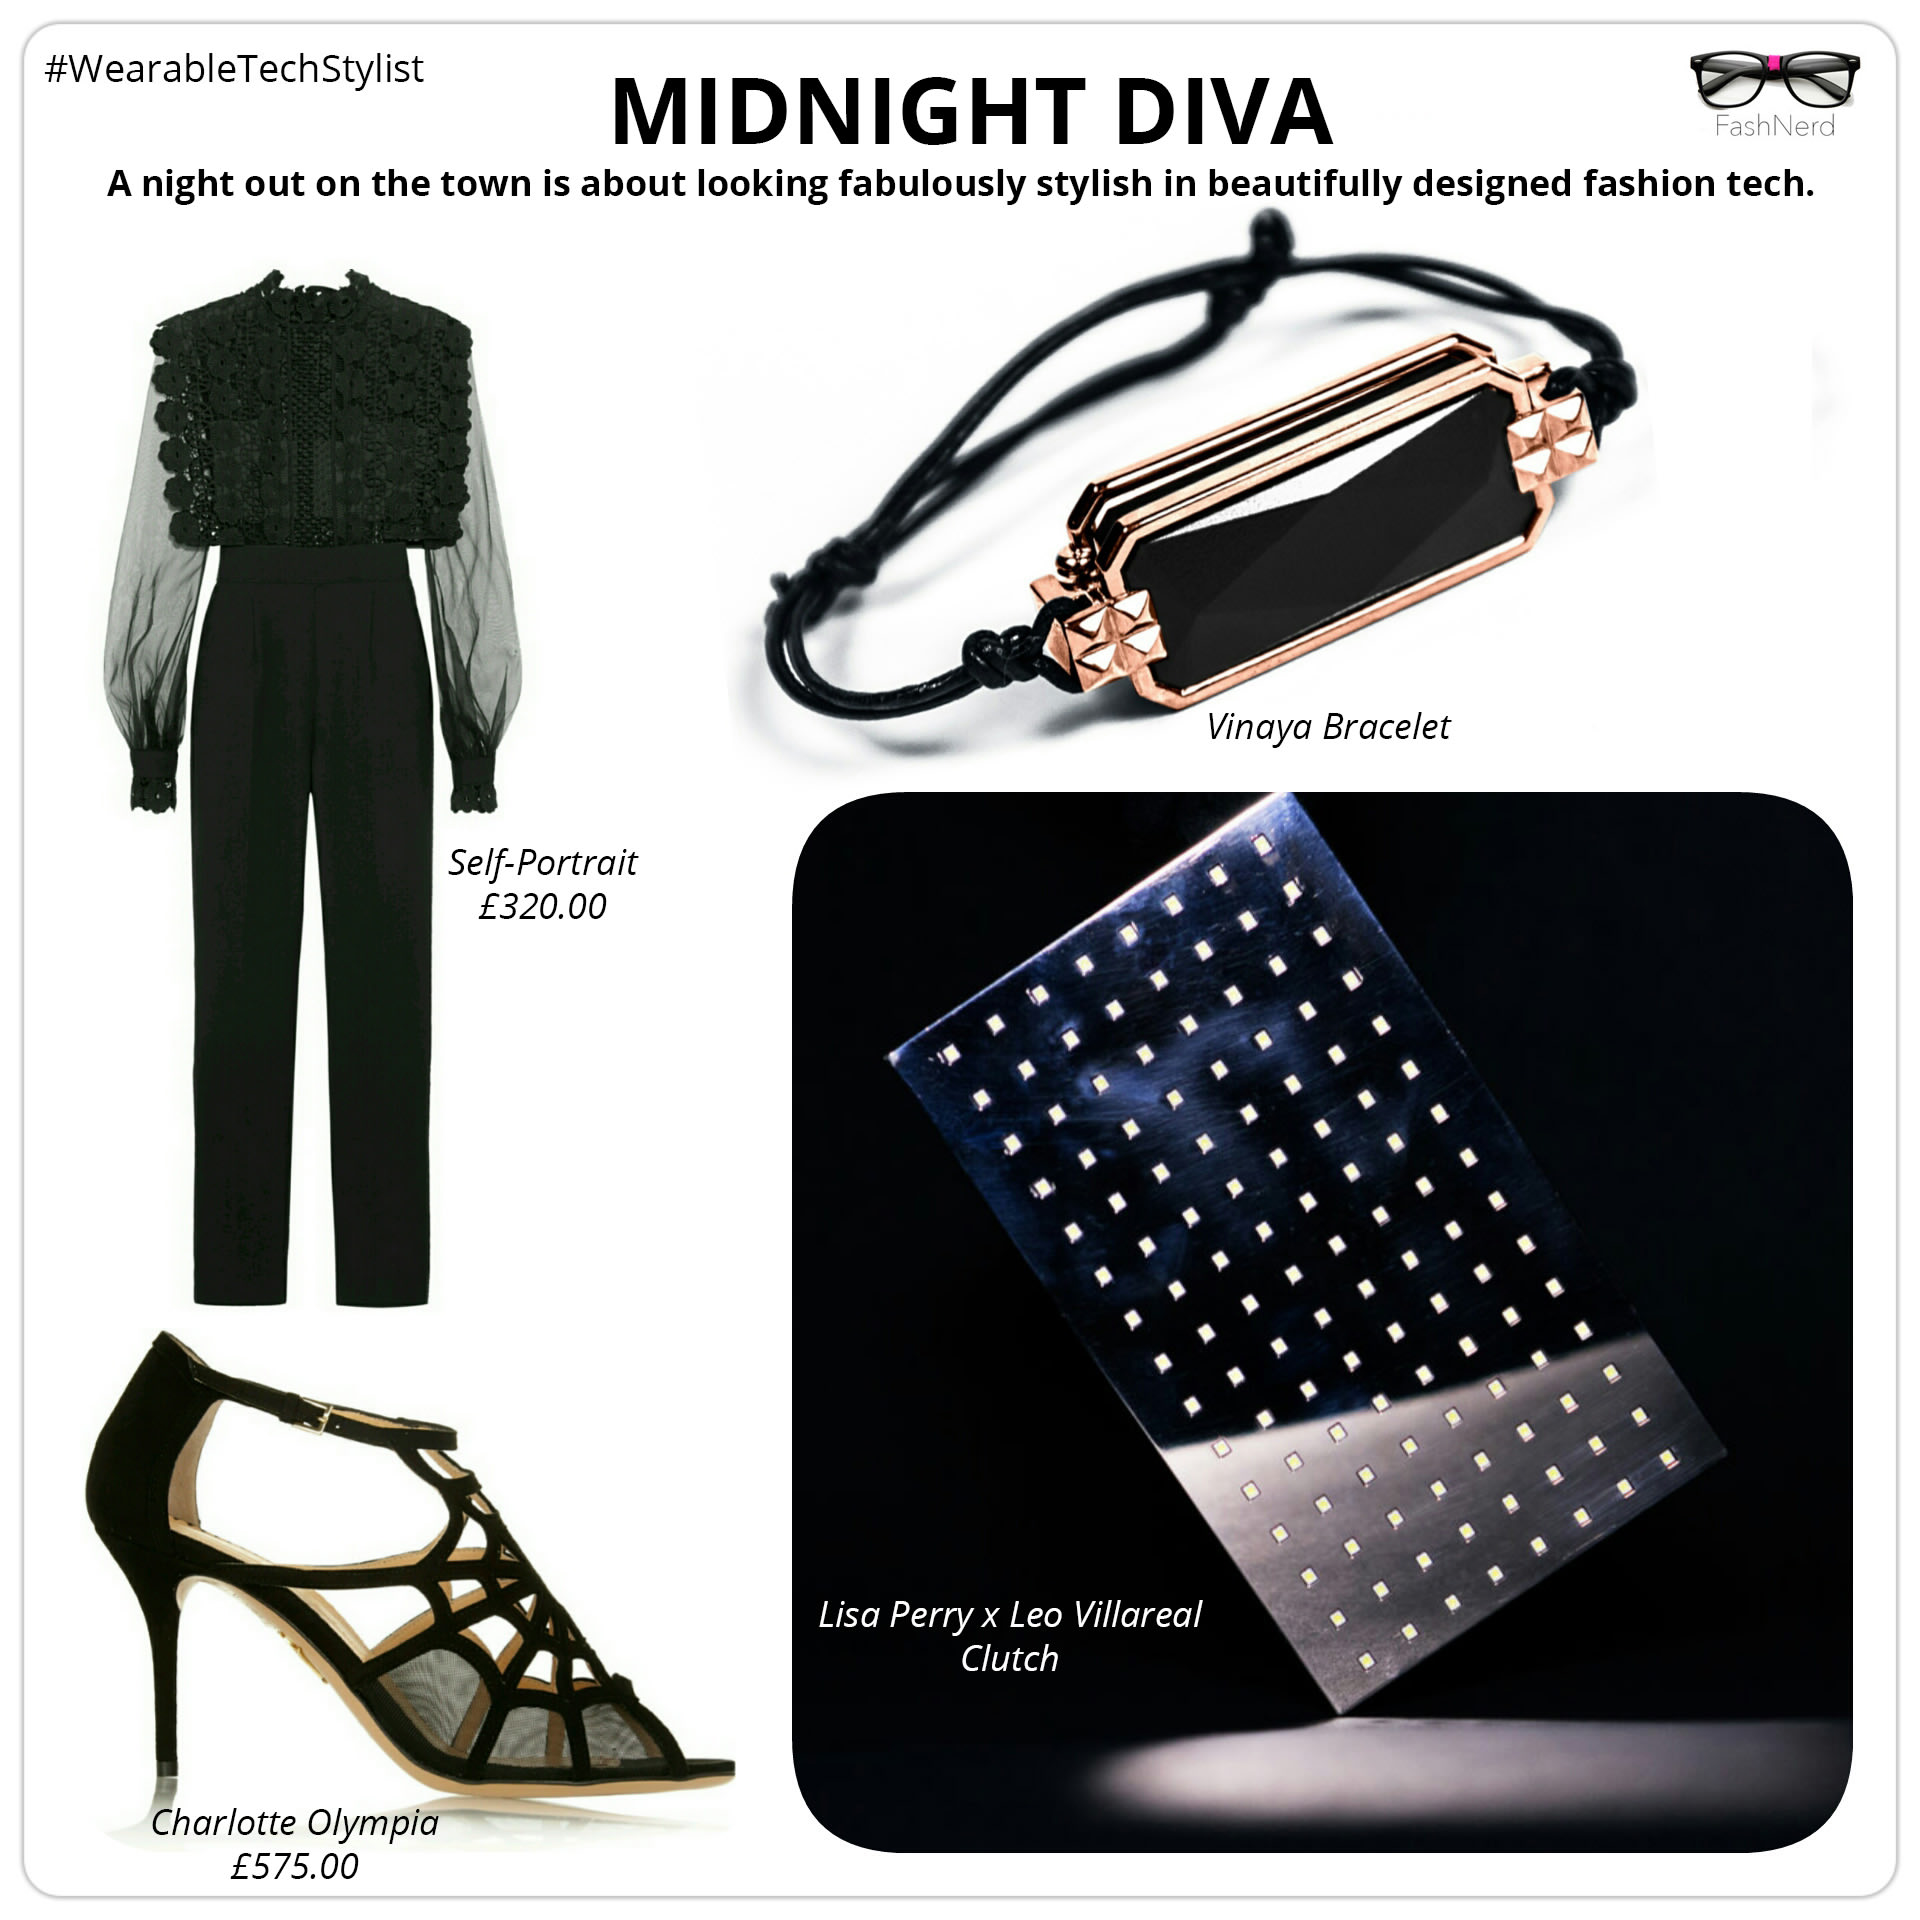 Midnight Diva